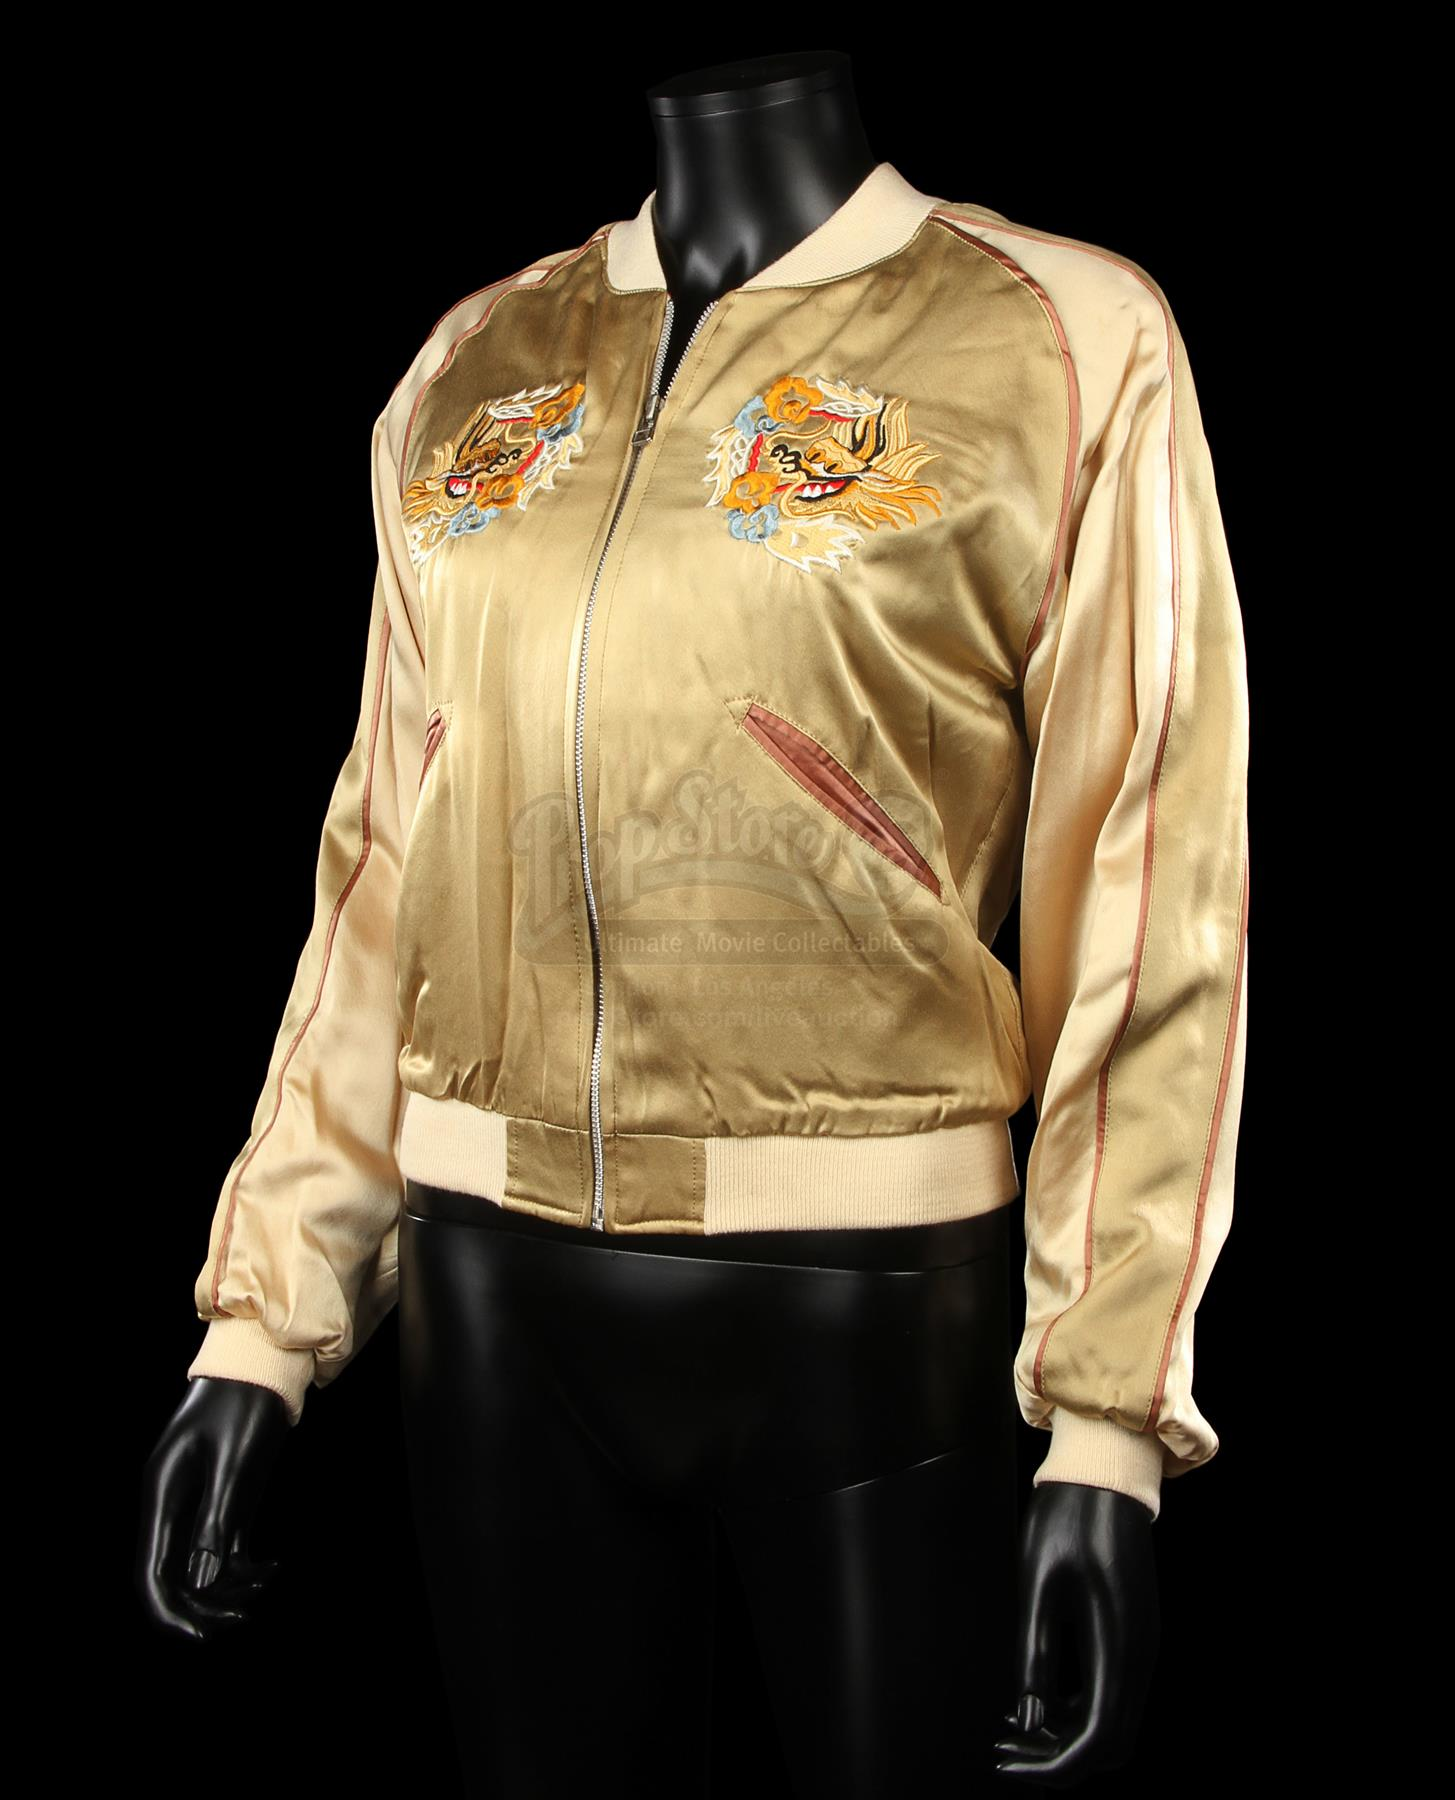 Lara Croft Tomb Raider The Cradle Of Life 2003 Lara Croft S Angelina Jolie Tiger Jacket Current Price 6500